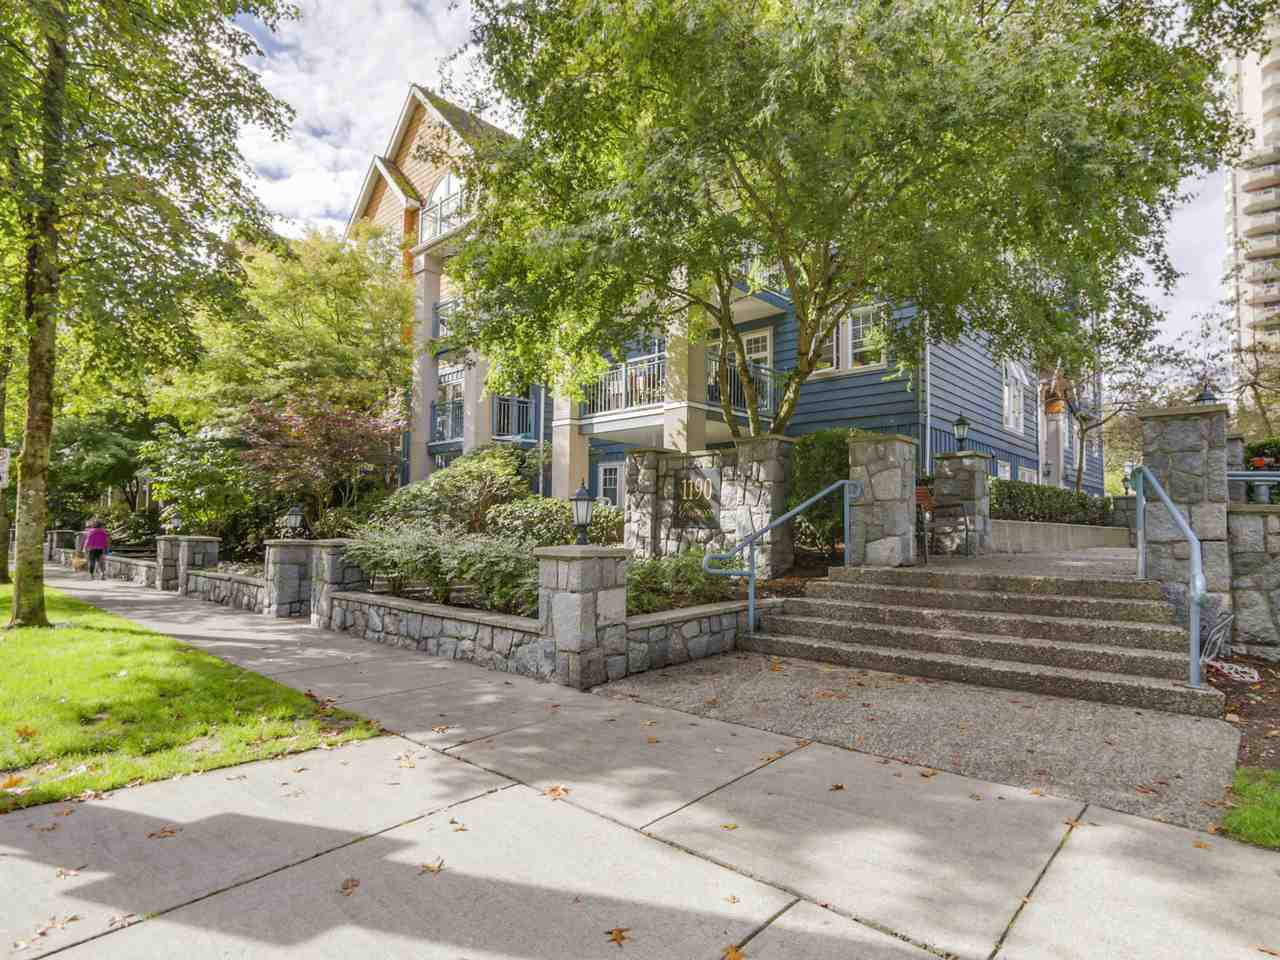 Main Photo: 304 1190 EASTWOOD STREET in Coquitlam: North Coquitlam Condo for sale : MLS®# R2112295